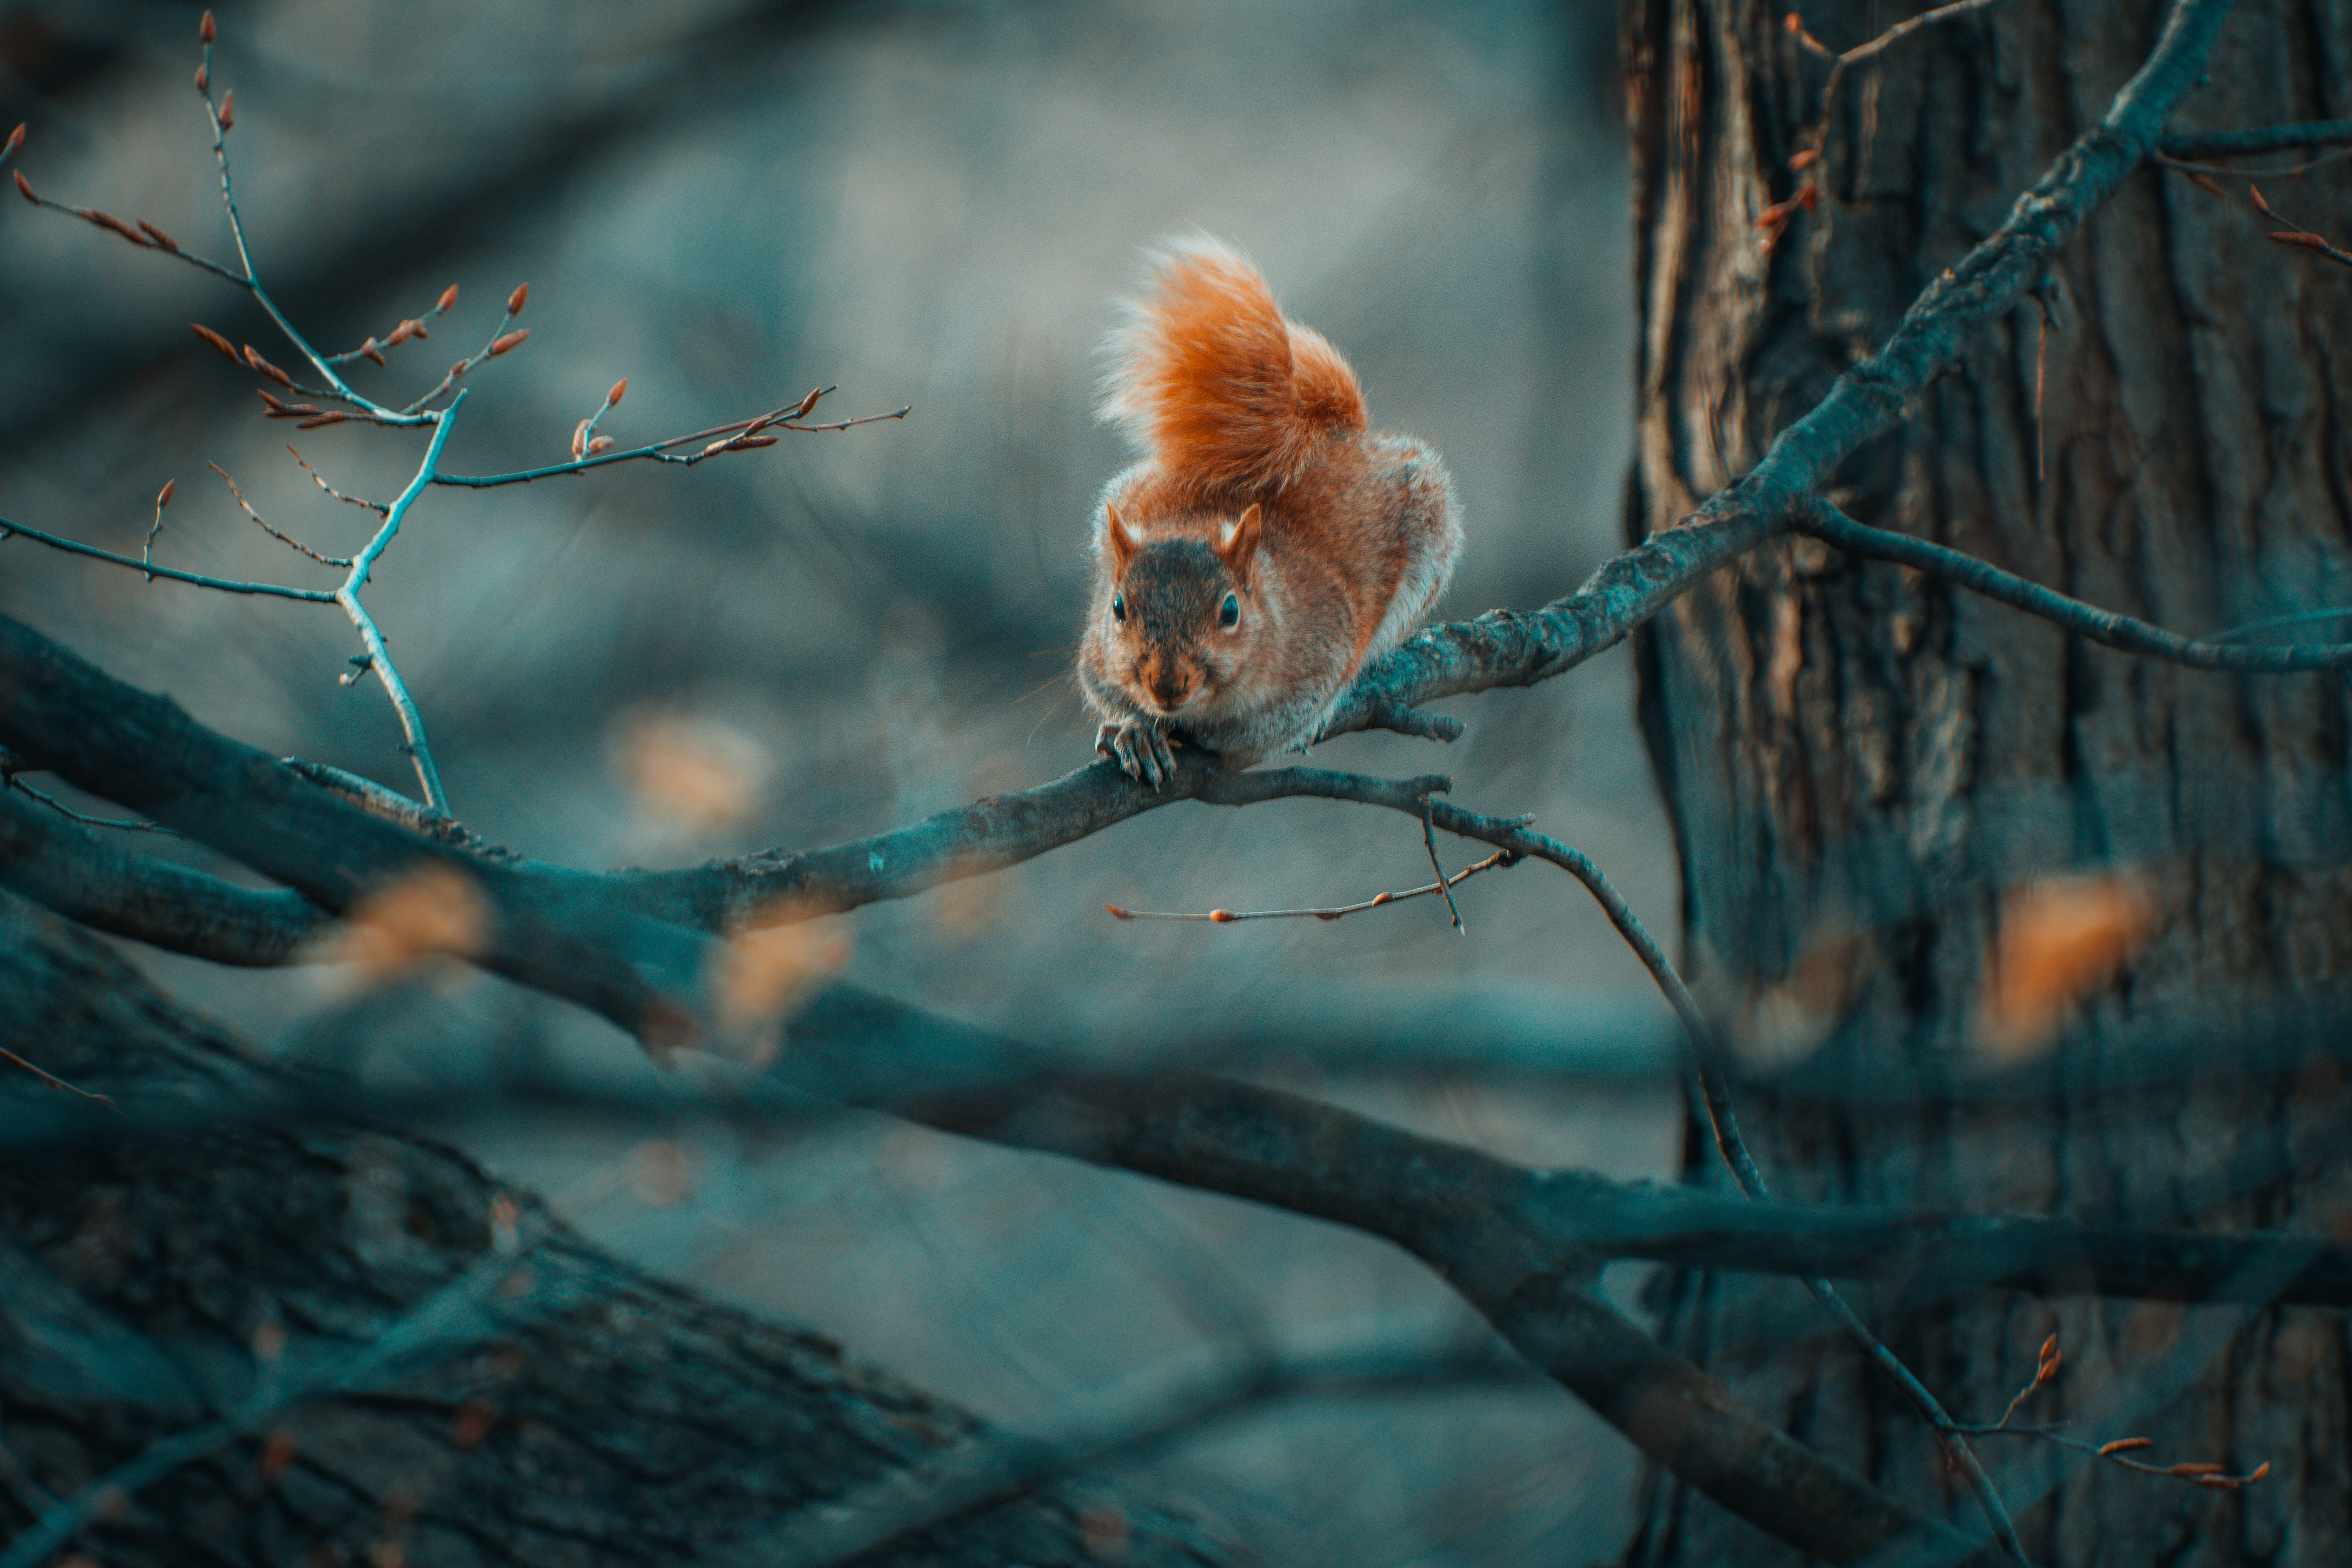 Download mobile wallpaper Wildlife, Squirrel, Animals, Branches, Funny for free.